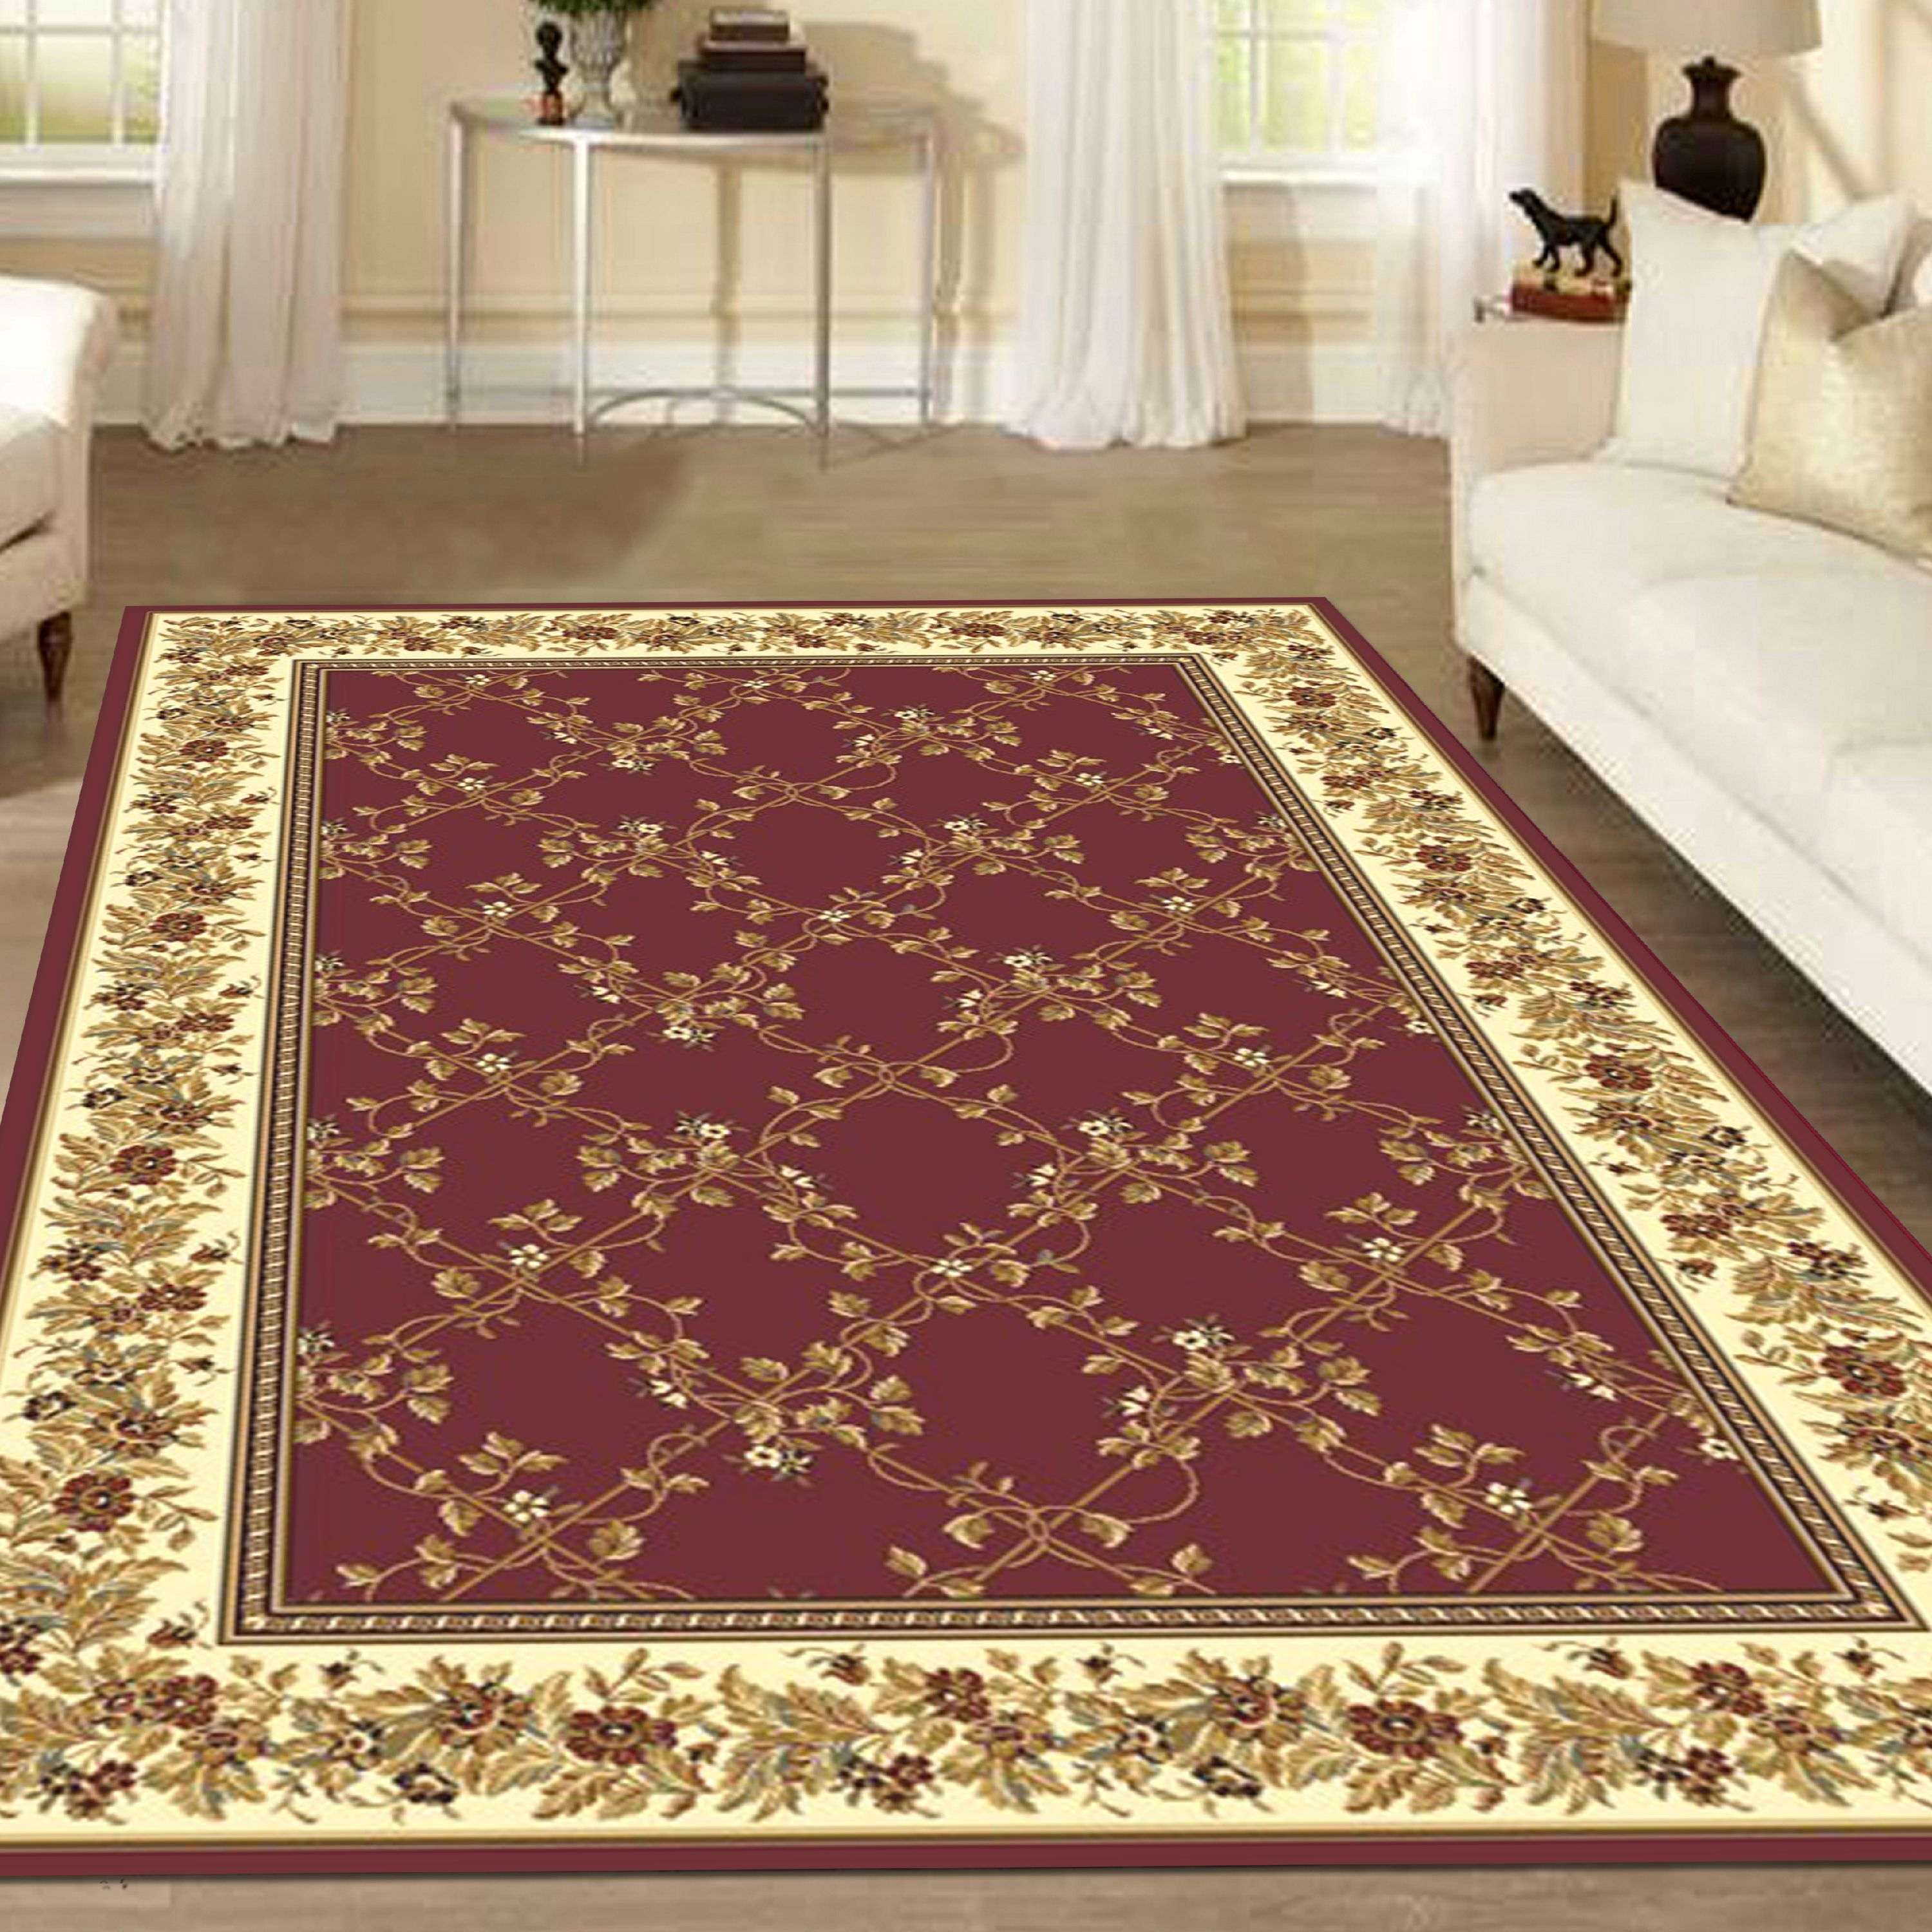 Radici USA Noble 1427 Area Rug - Burgundy